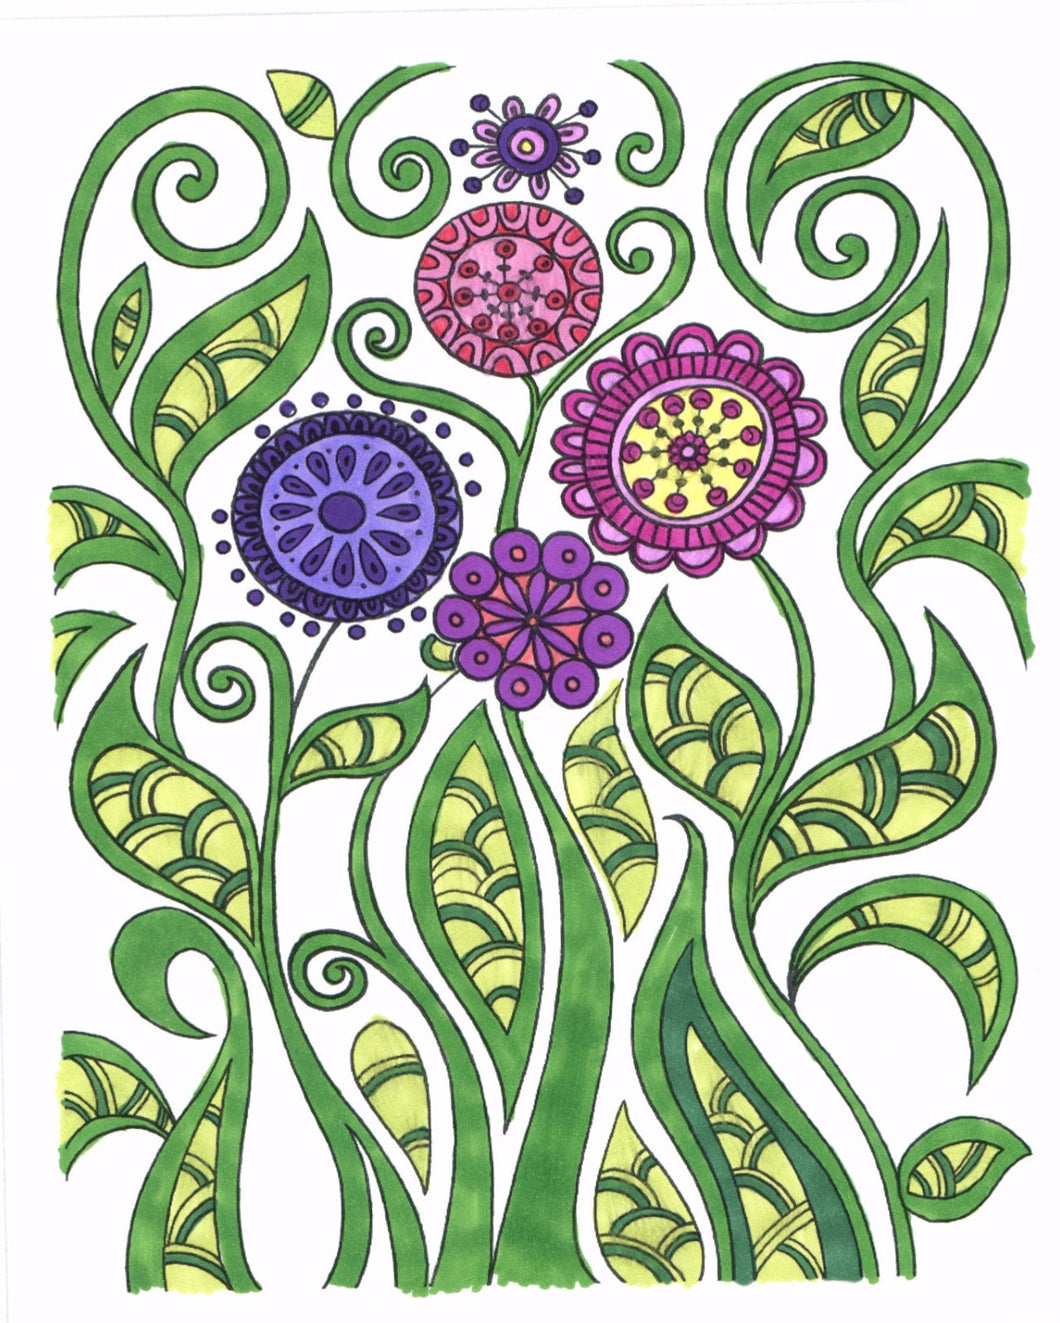 The Art Of Mindfulness Serene And Tranquil Coloring